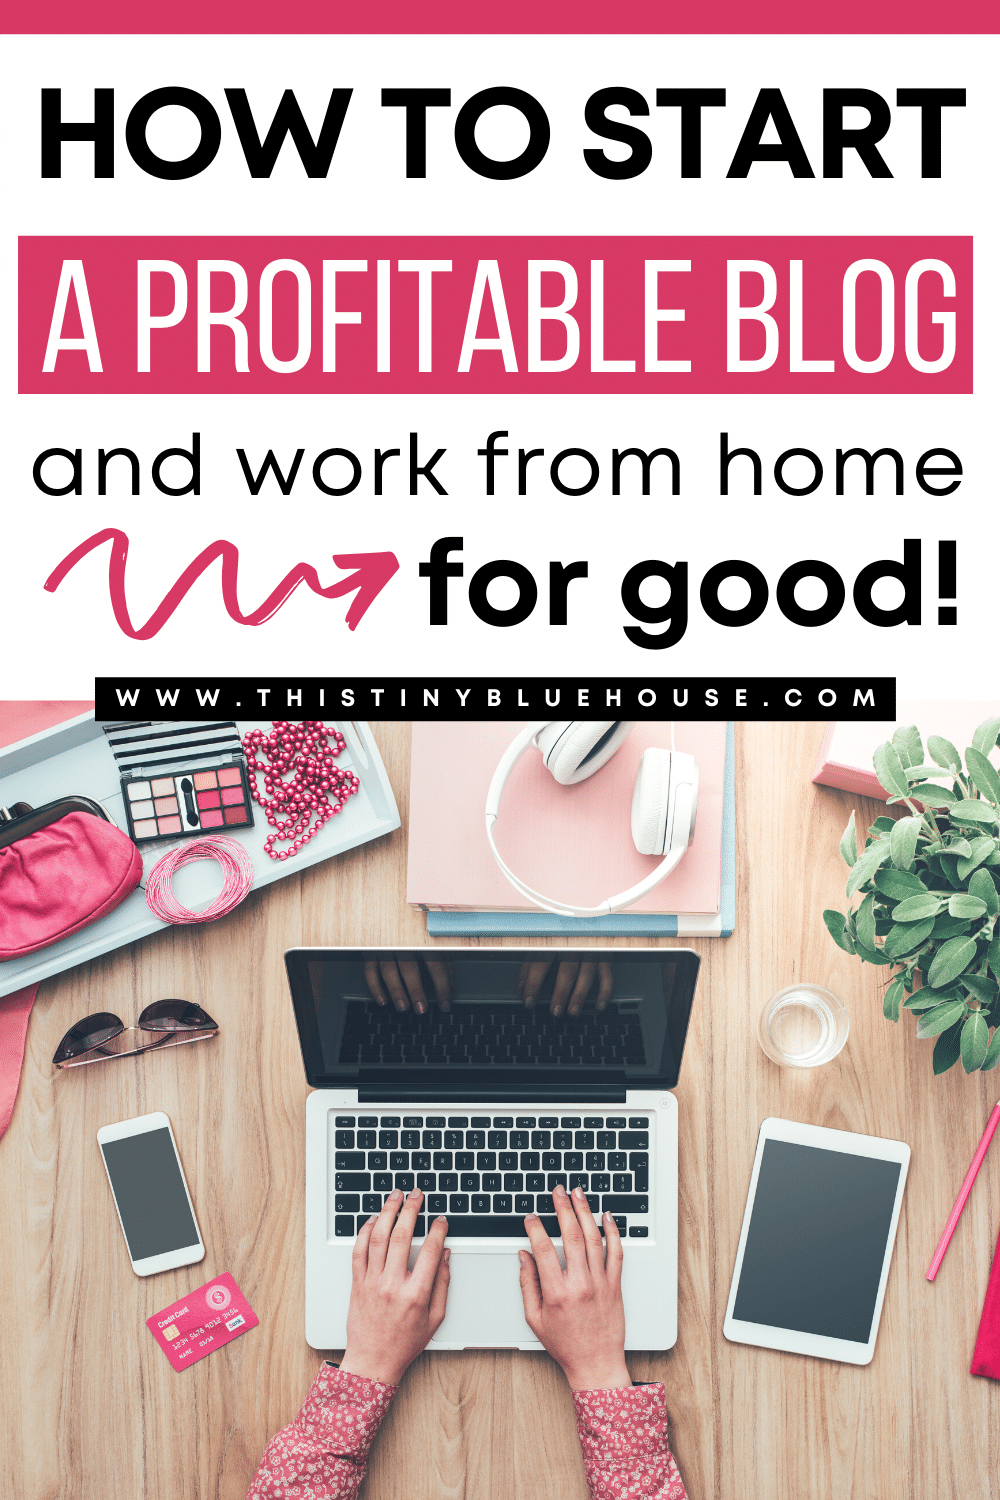 Here is an easy tutorial for starting a profitable blog and working from home for good. This easy to follow tutorial and free 5 day email course is a MUST for anyone looking to start a blog and work from home for good.